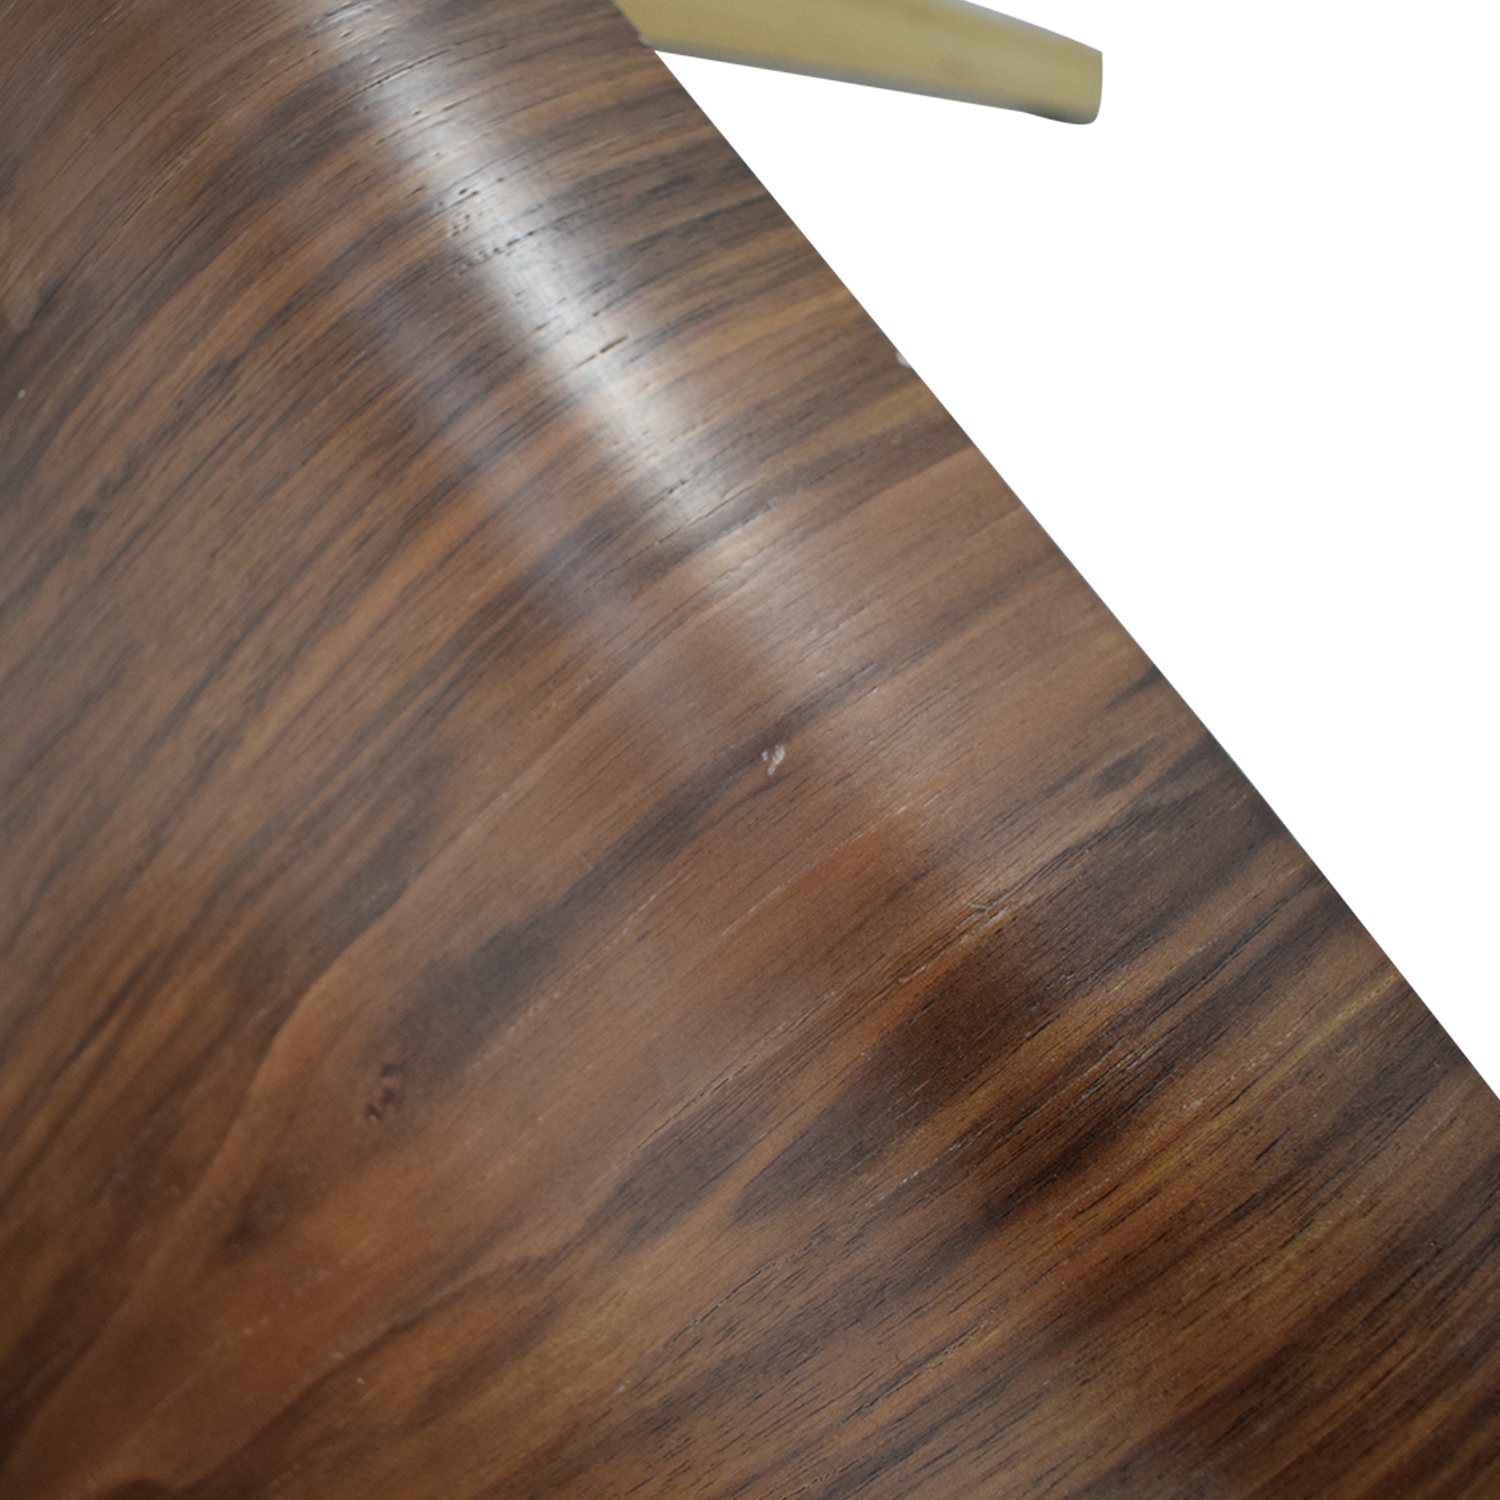 Wood Dining Room Chairs dimensions